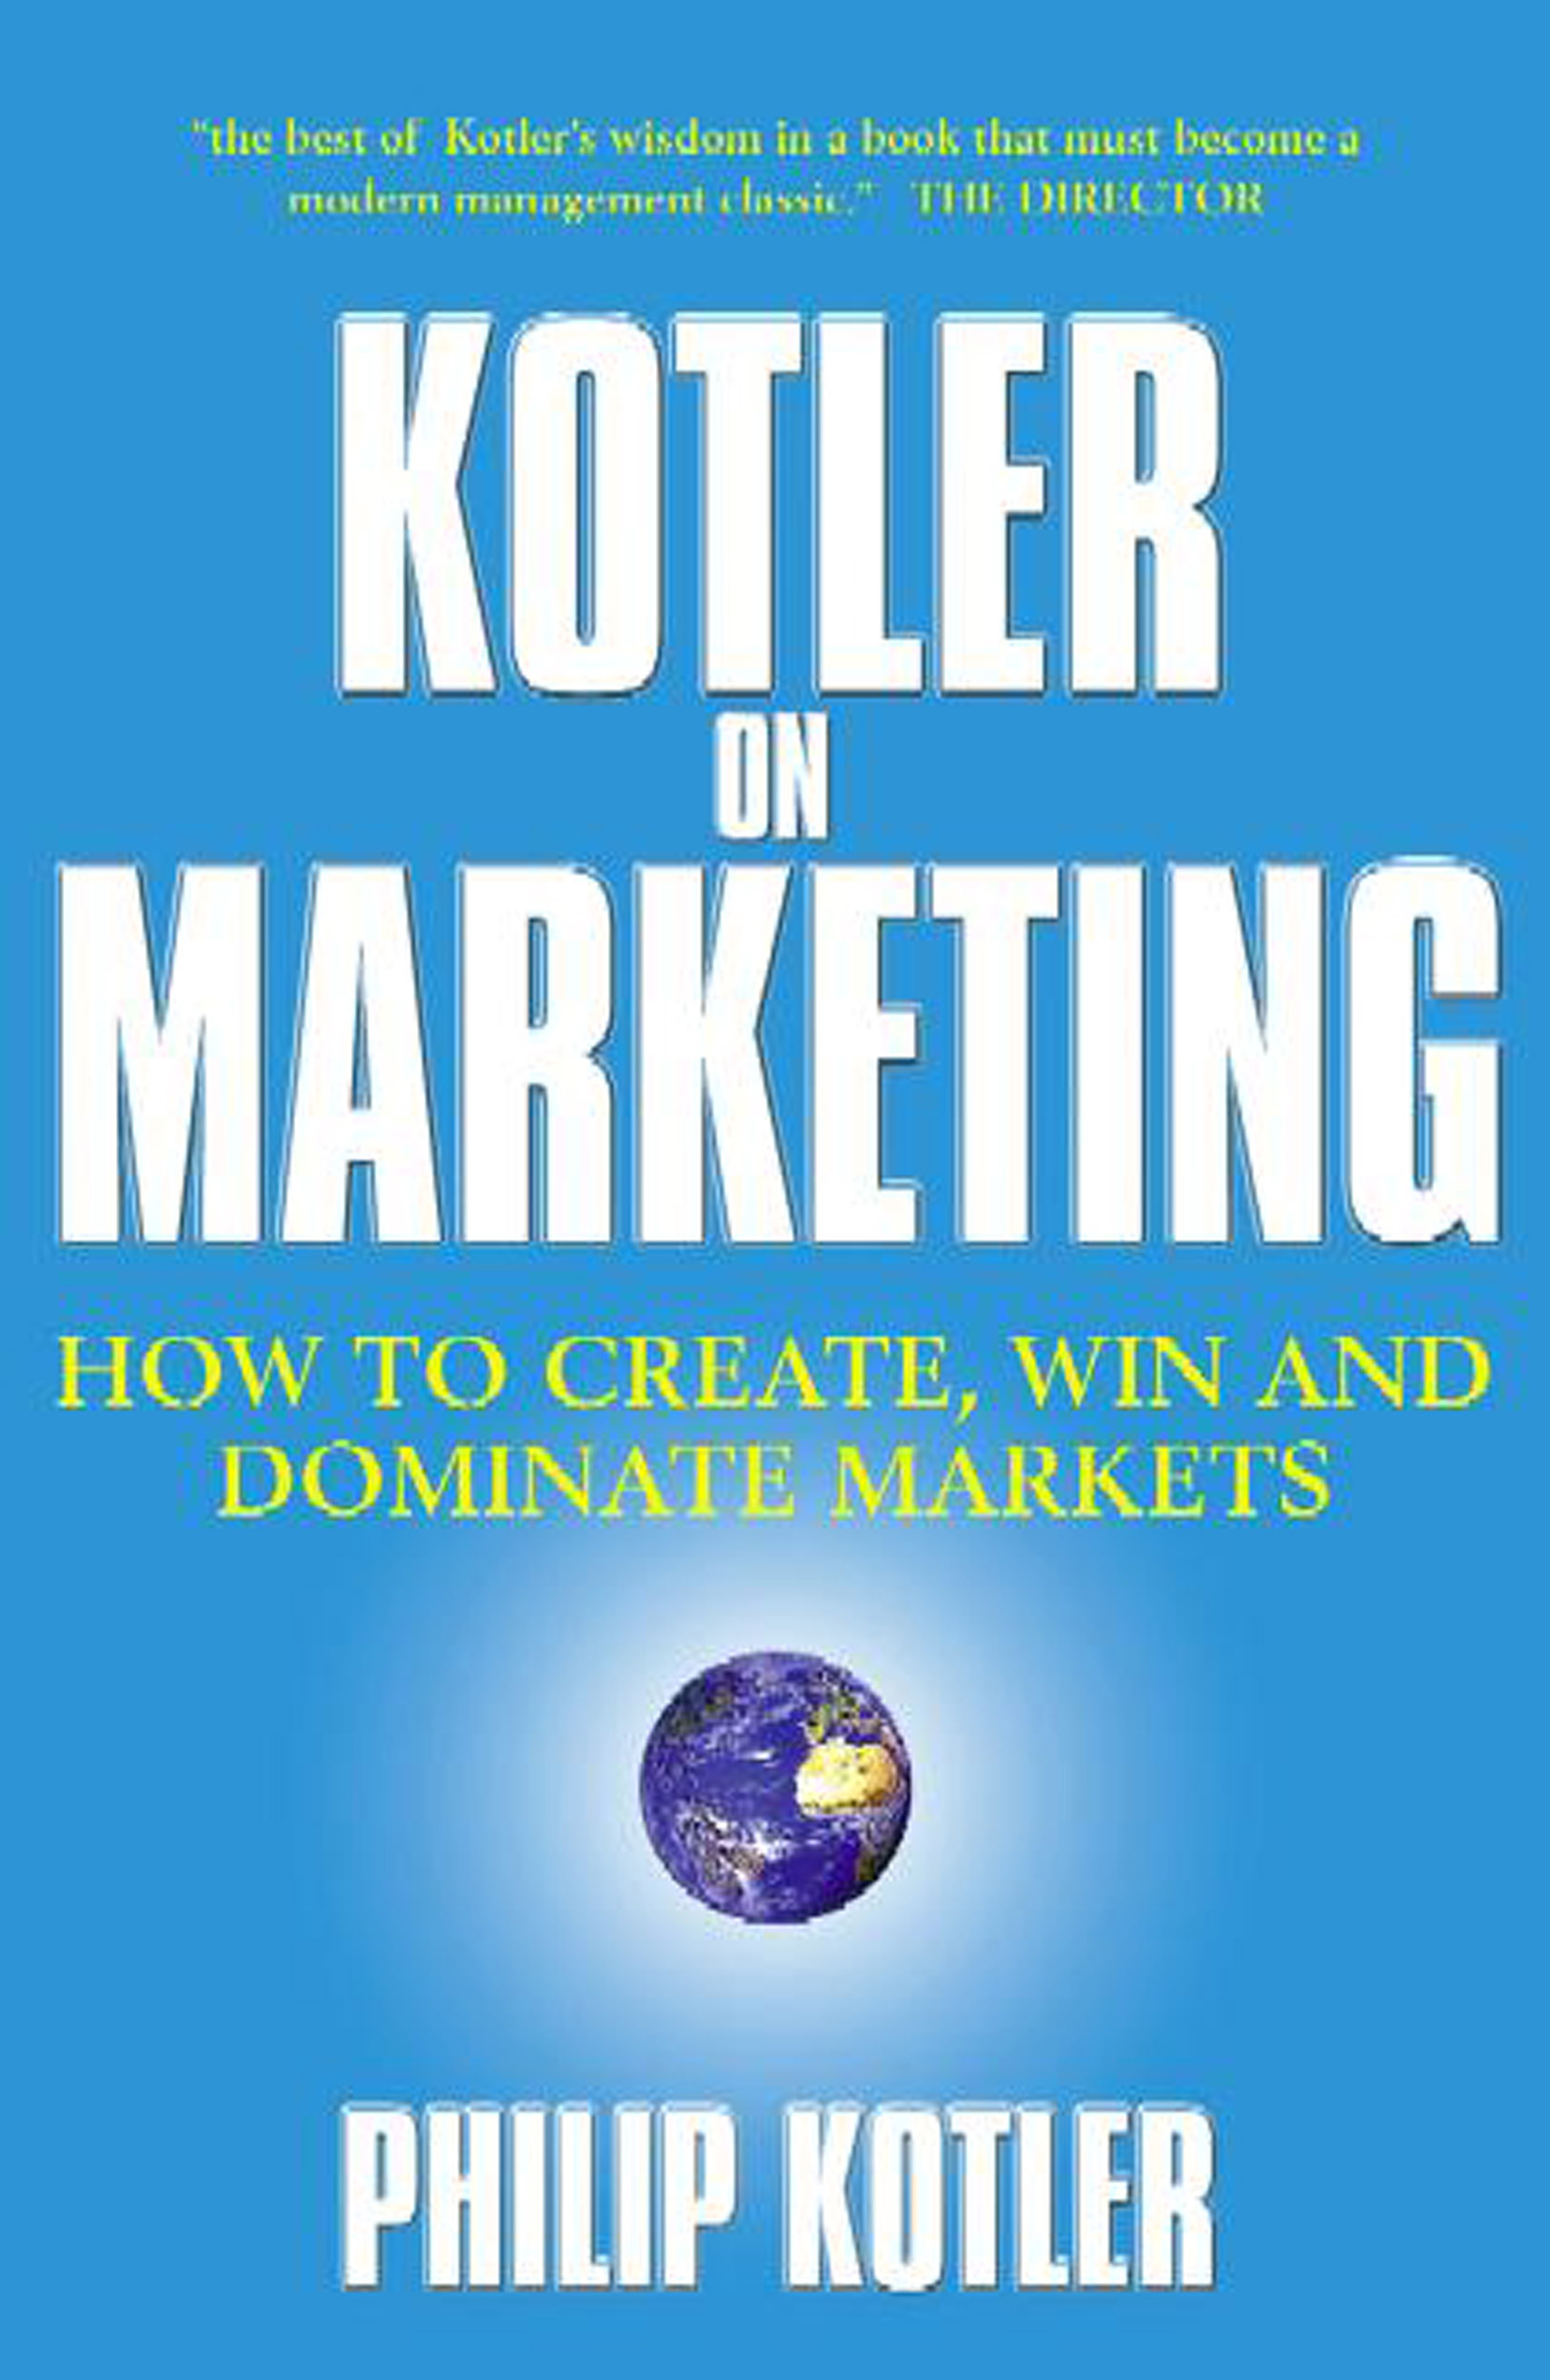 MARKETING BOOK BY PHILIP KOTLER EPUB DOWNLOAD